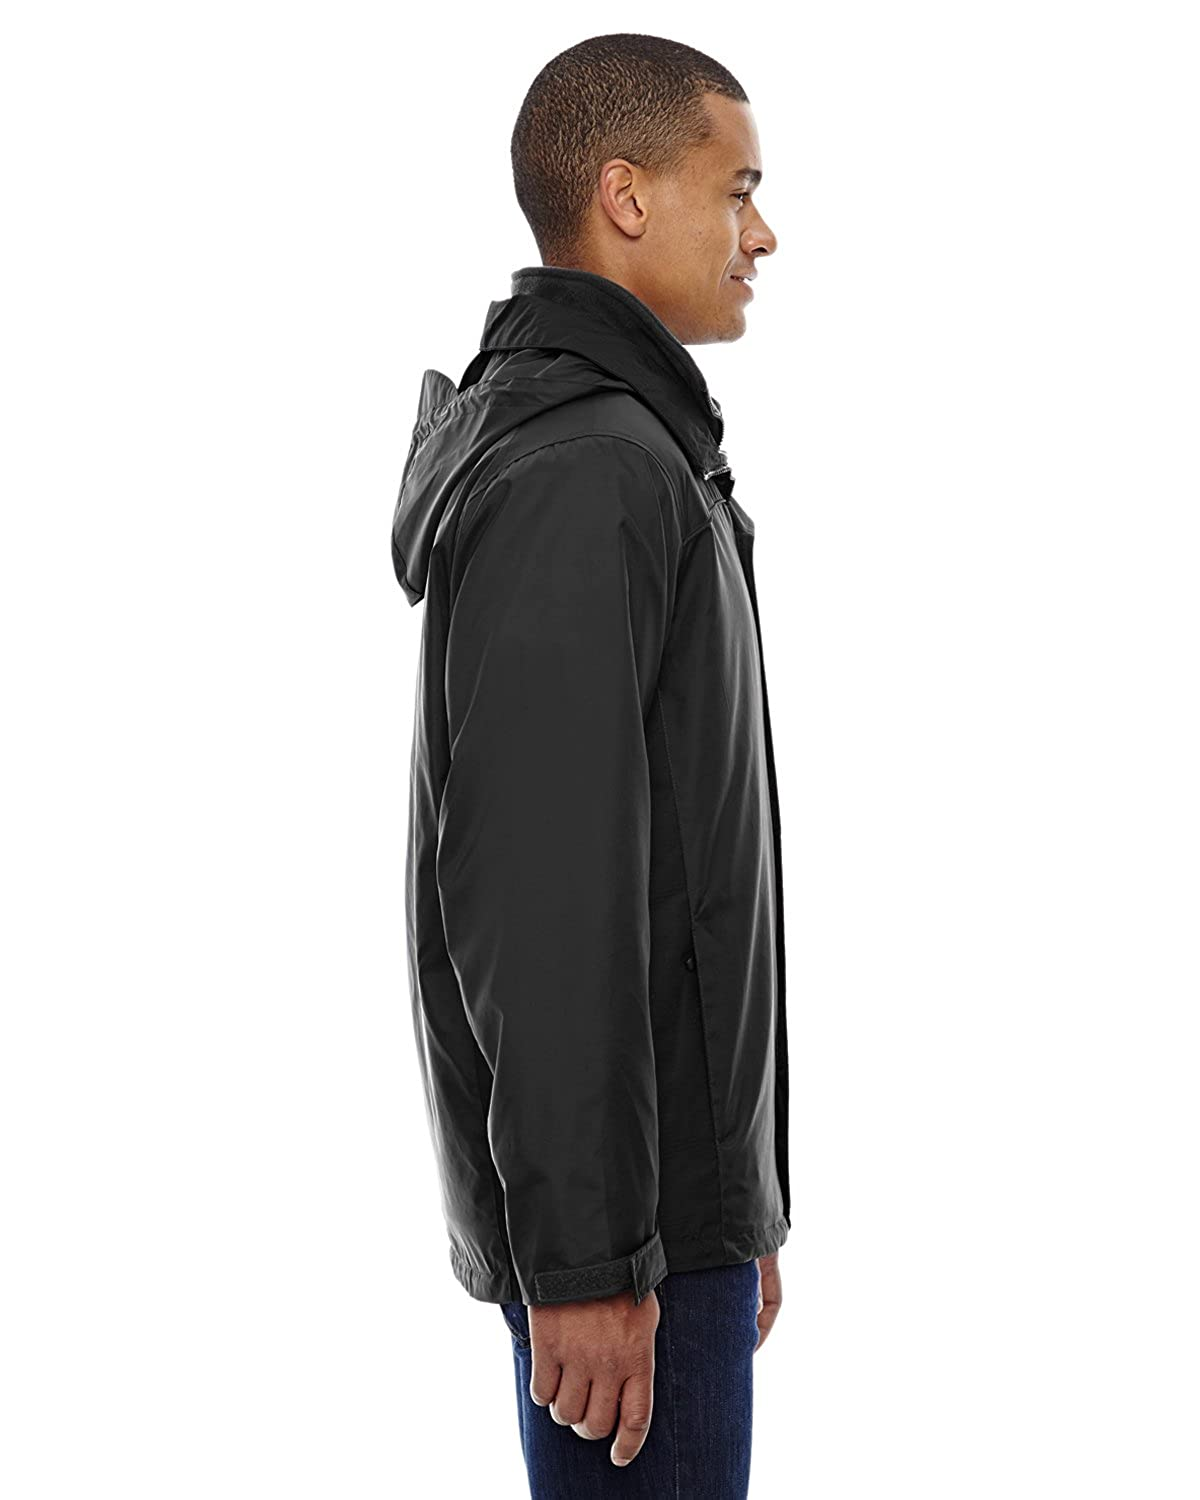 L 88130 North End Mens 3-In-1 Jacket -MIDN NAVY 71